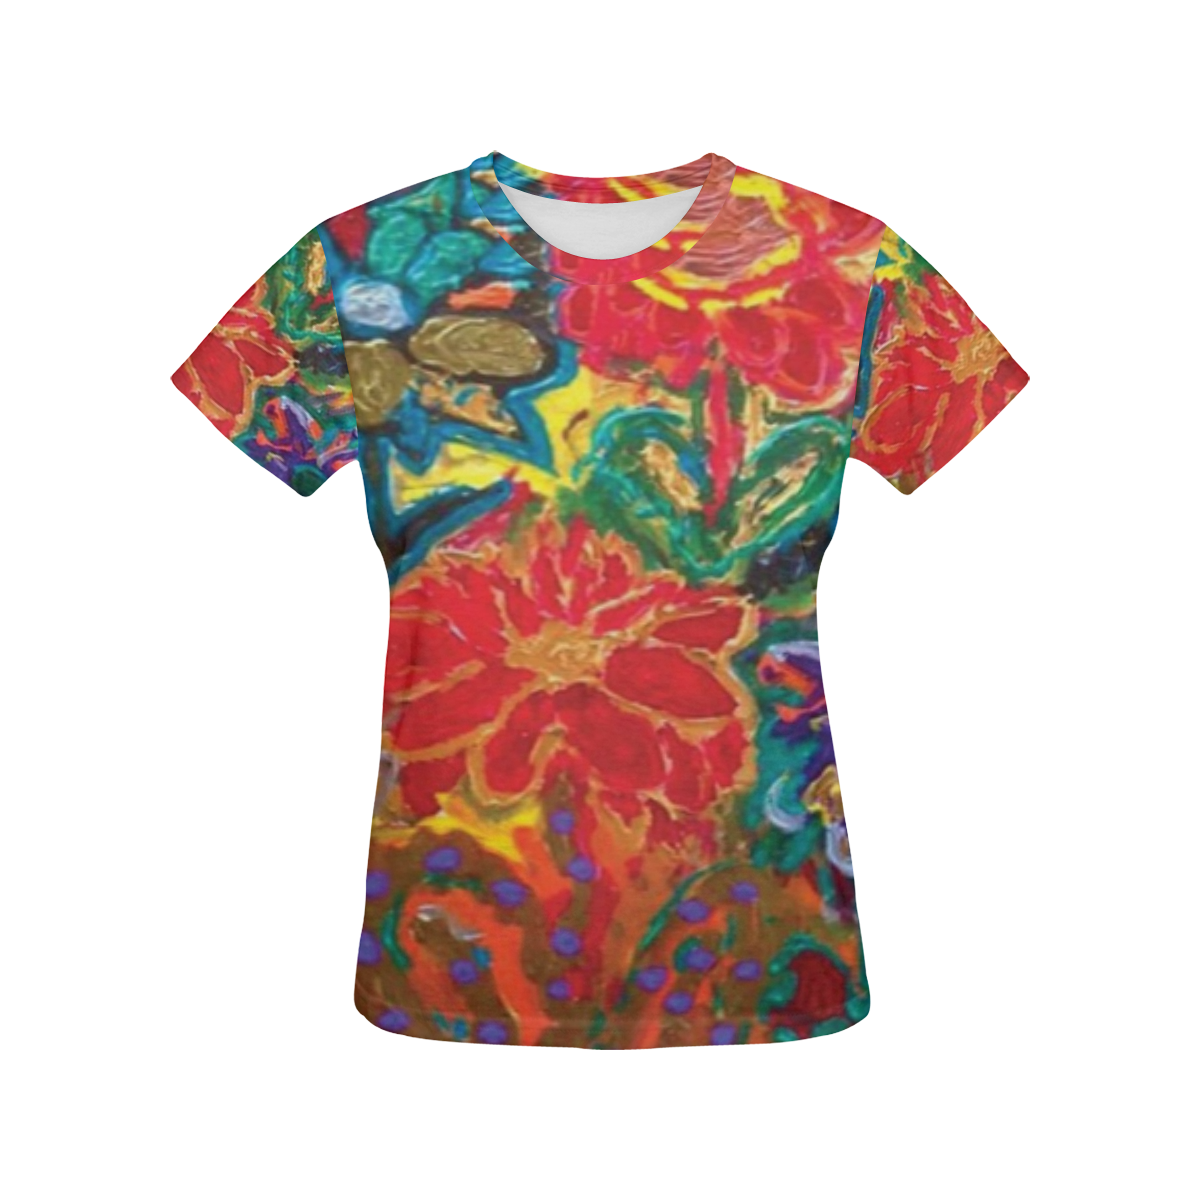 GIRLS HAPPY All Over Print T-Shirt for Women (USA Size) (Model T40)